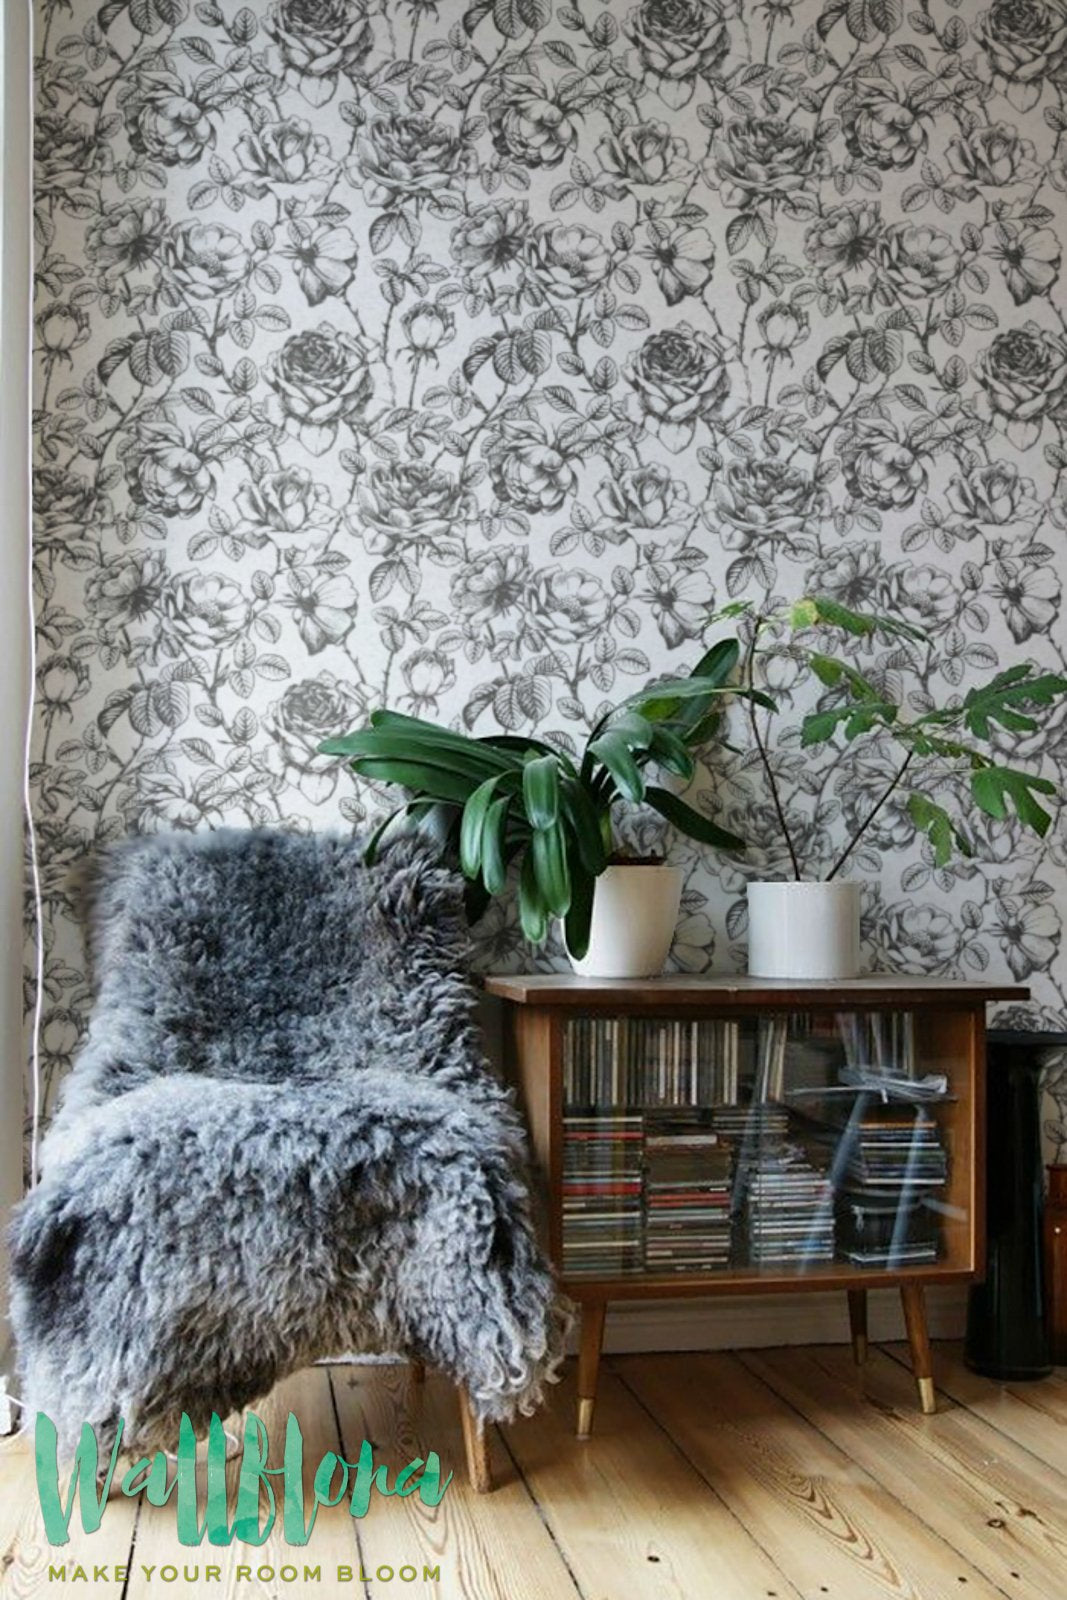 BLACK AND WHITE ROSES REMOVABLE WALLPAPER